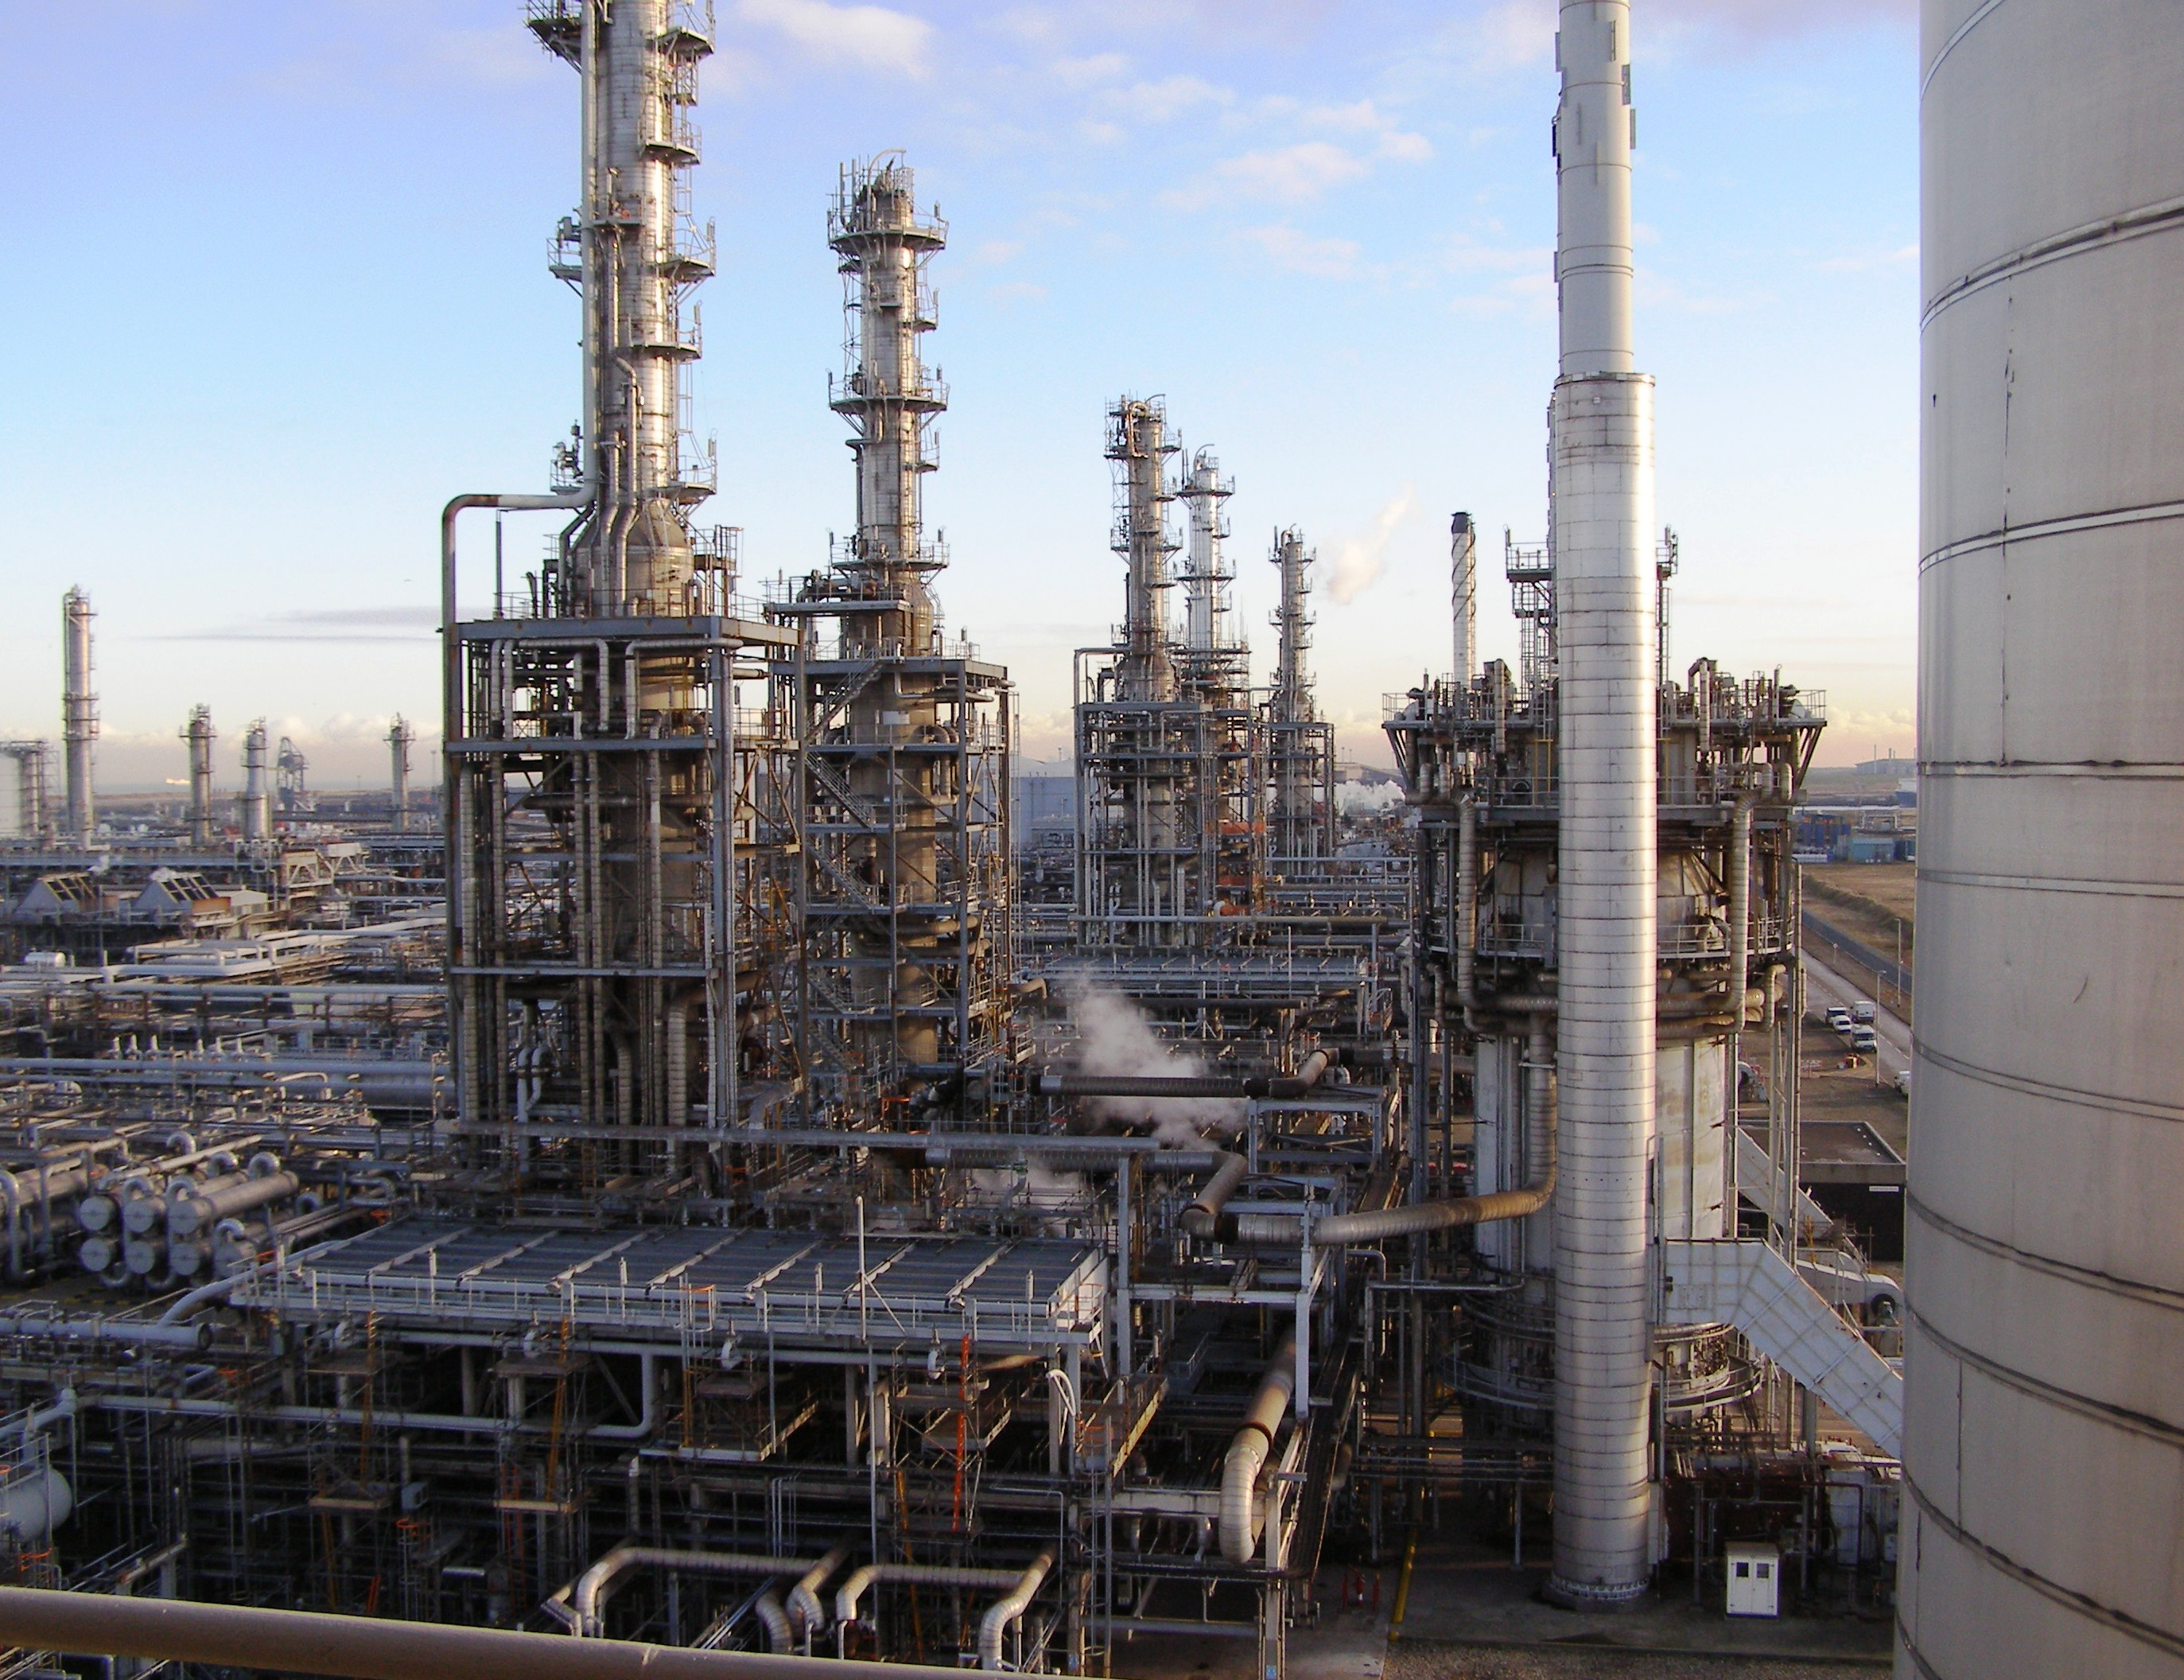 http://ppec.co.in/images/Oil-refinery.JPG